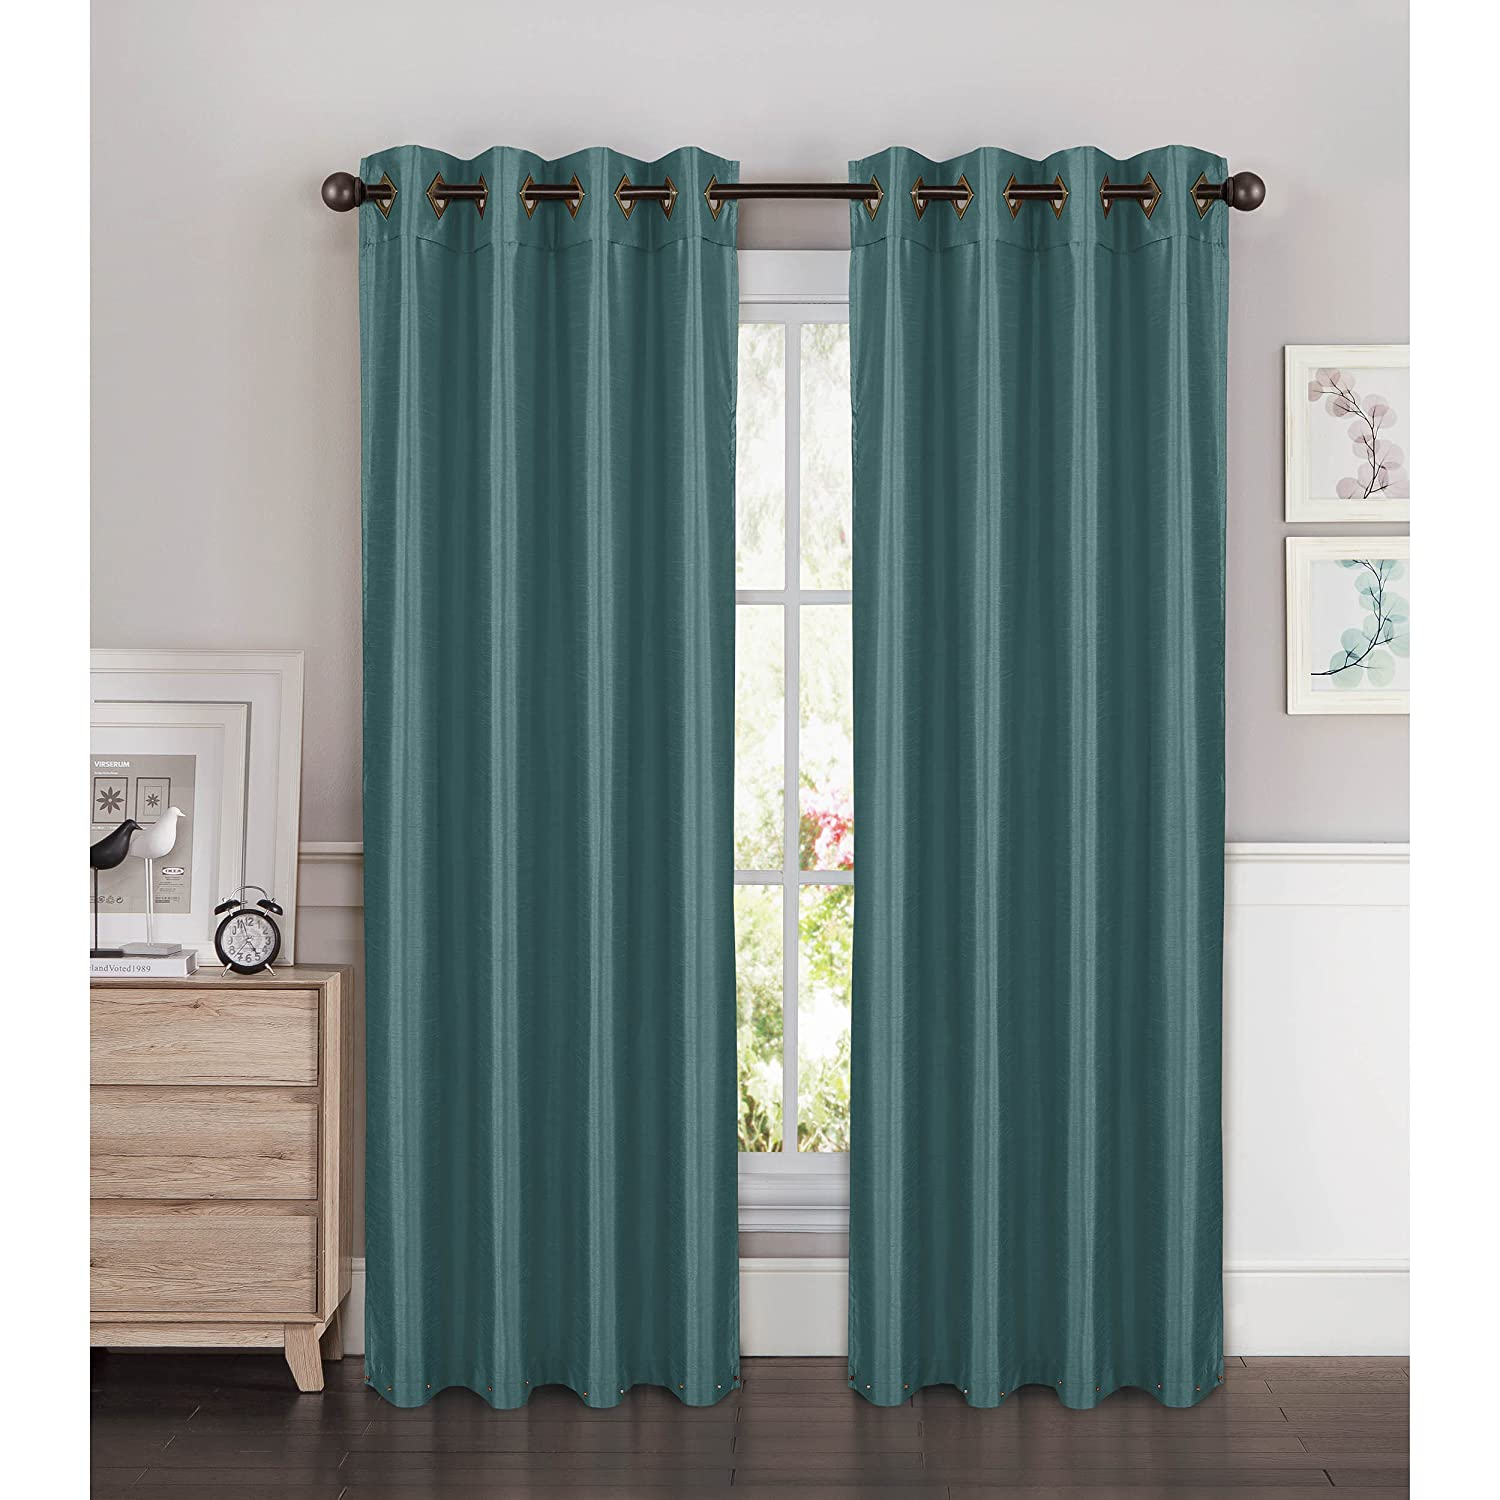 grommet garden today hlc shipping me panel overstock arrow product curtain blackout with grey free pair print drapes thermal grommets home